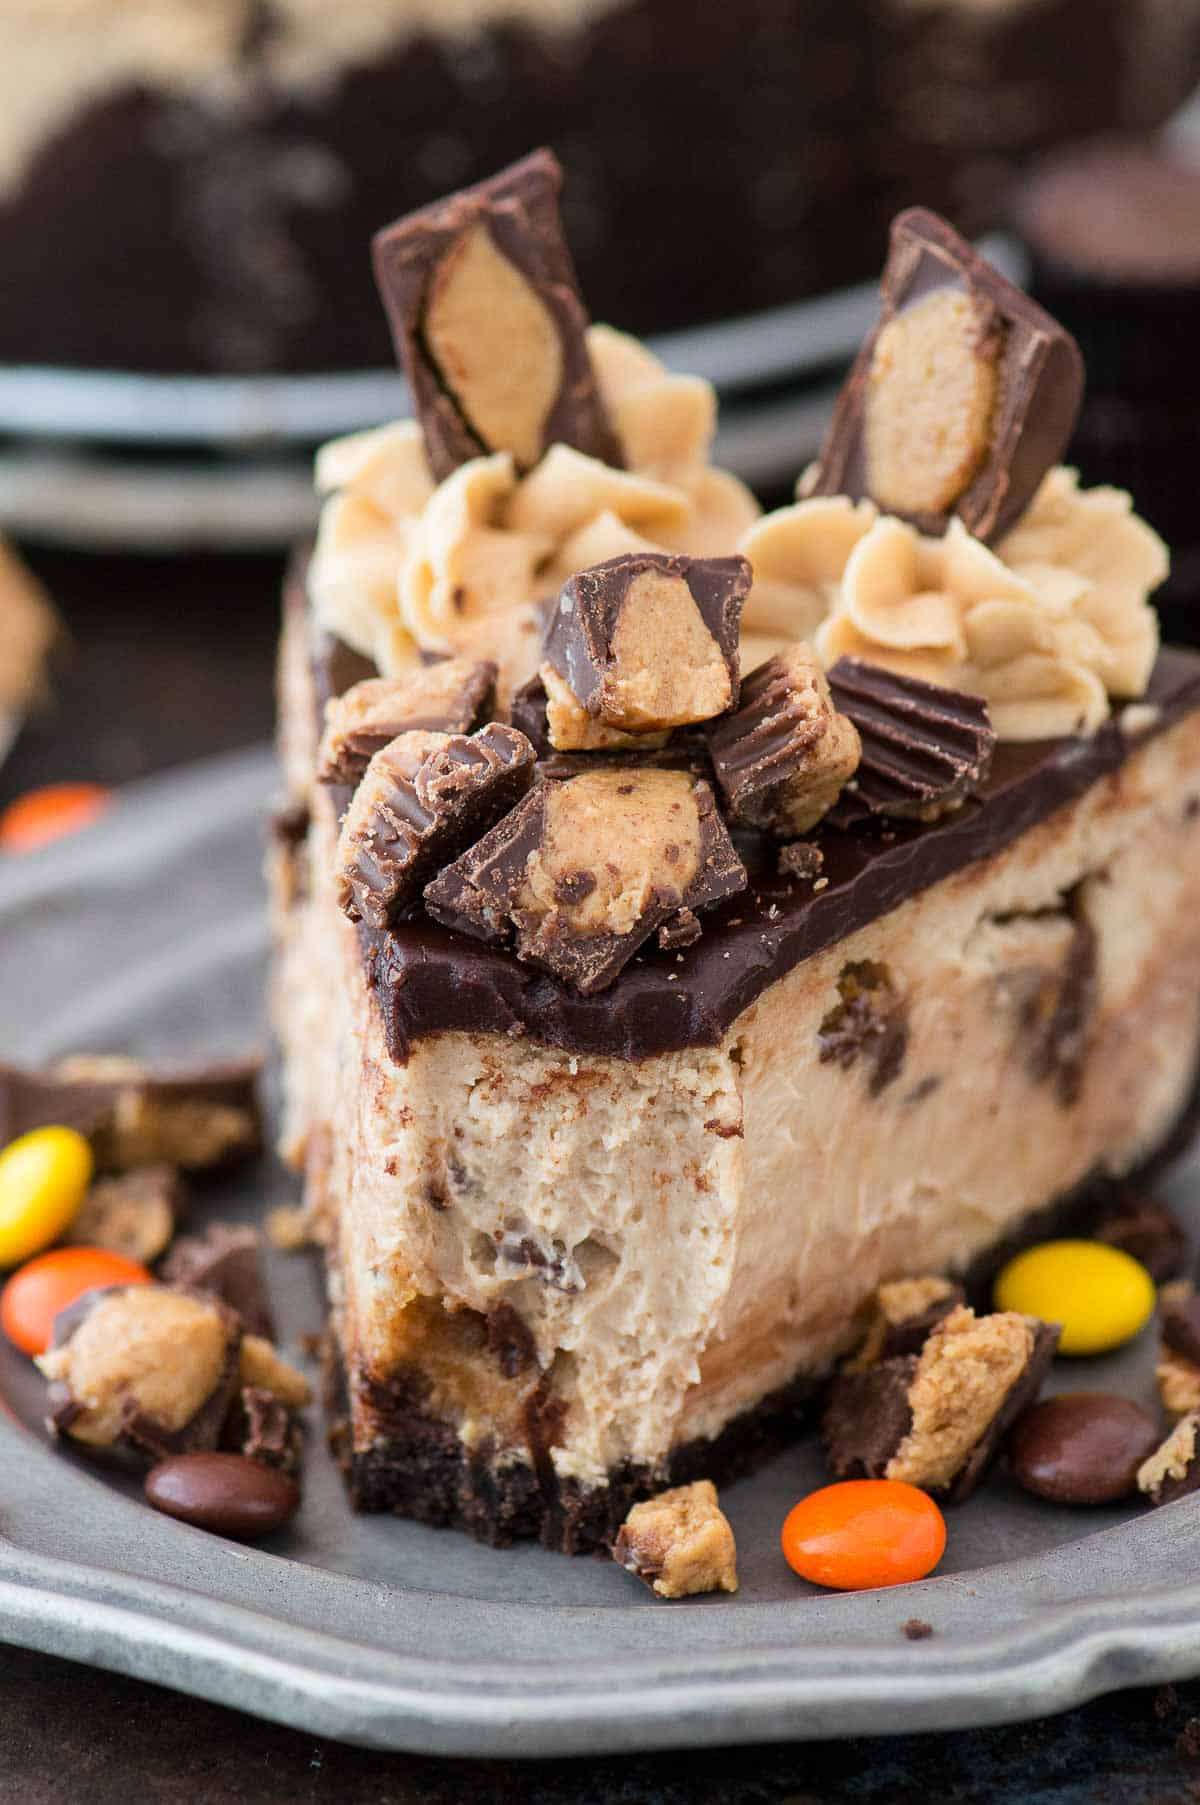 slice of reese's cheesecake with chocolate ganache and more reese's cup on metal plate